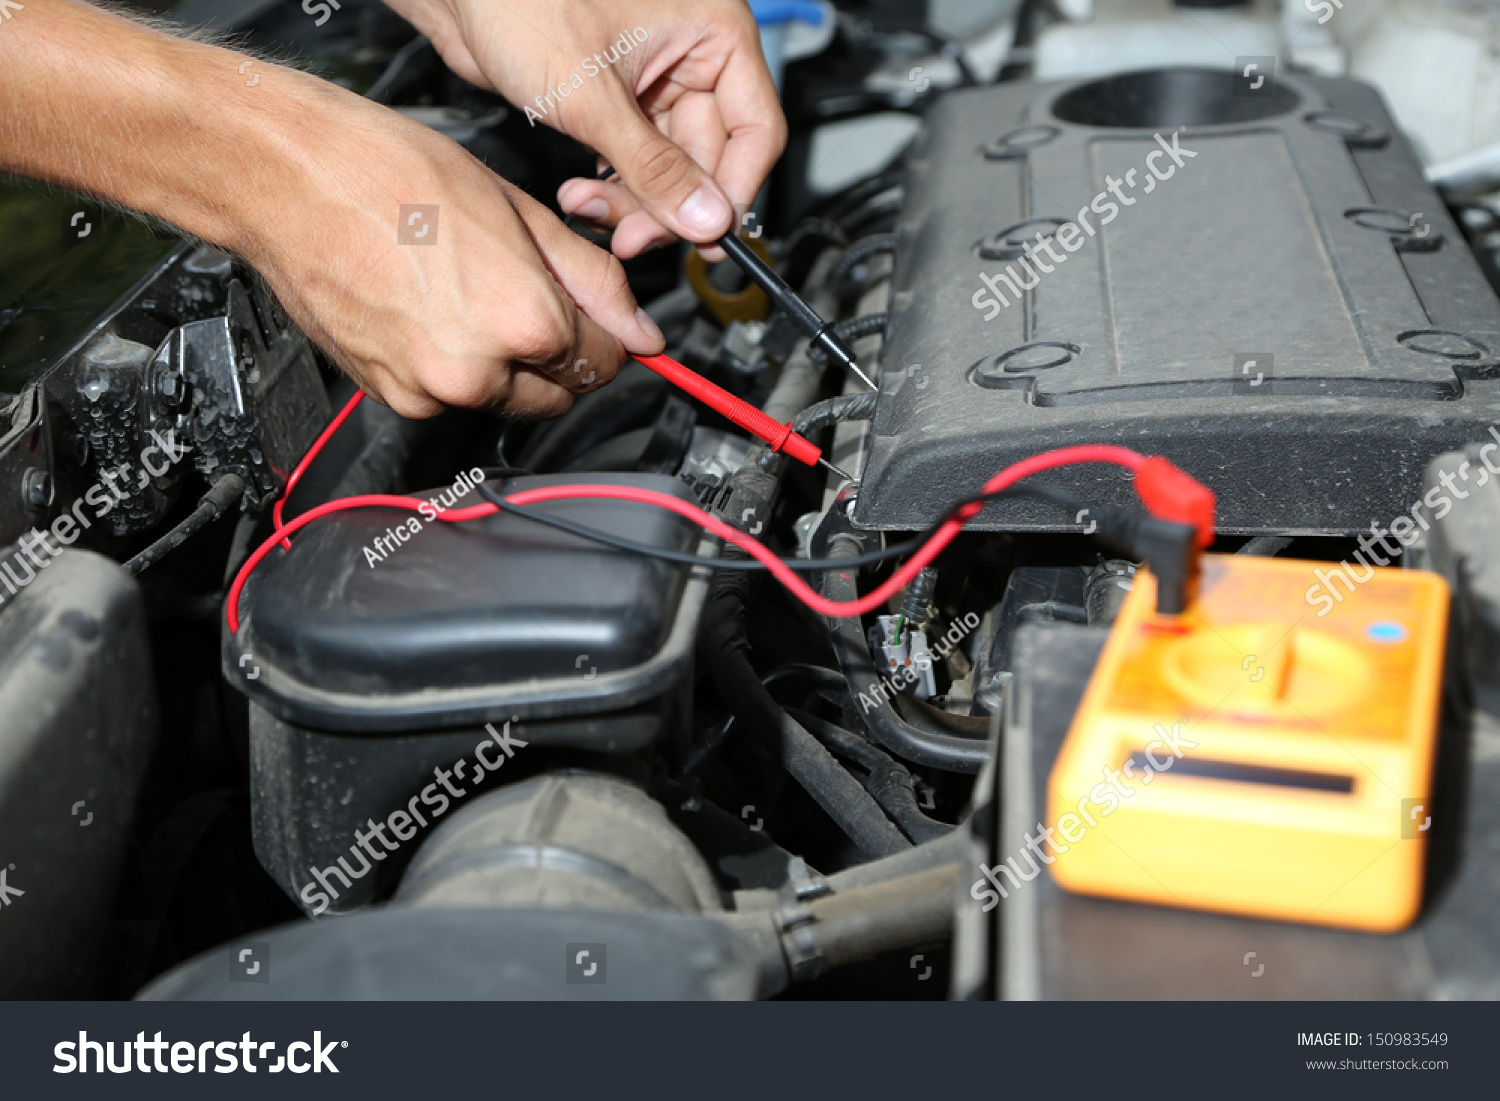 Voltage Auto Accu Auto Mechanic Uses Multimeter Voltmeter To Check Voltage